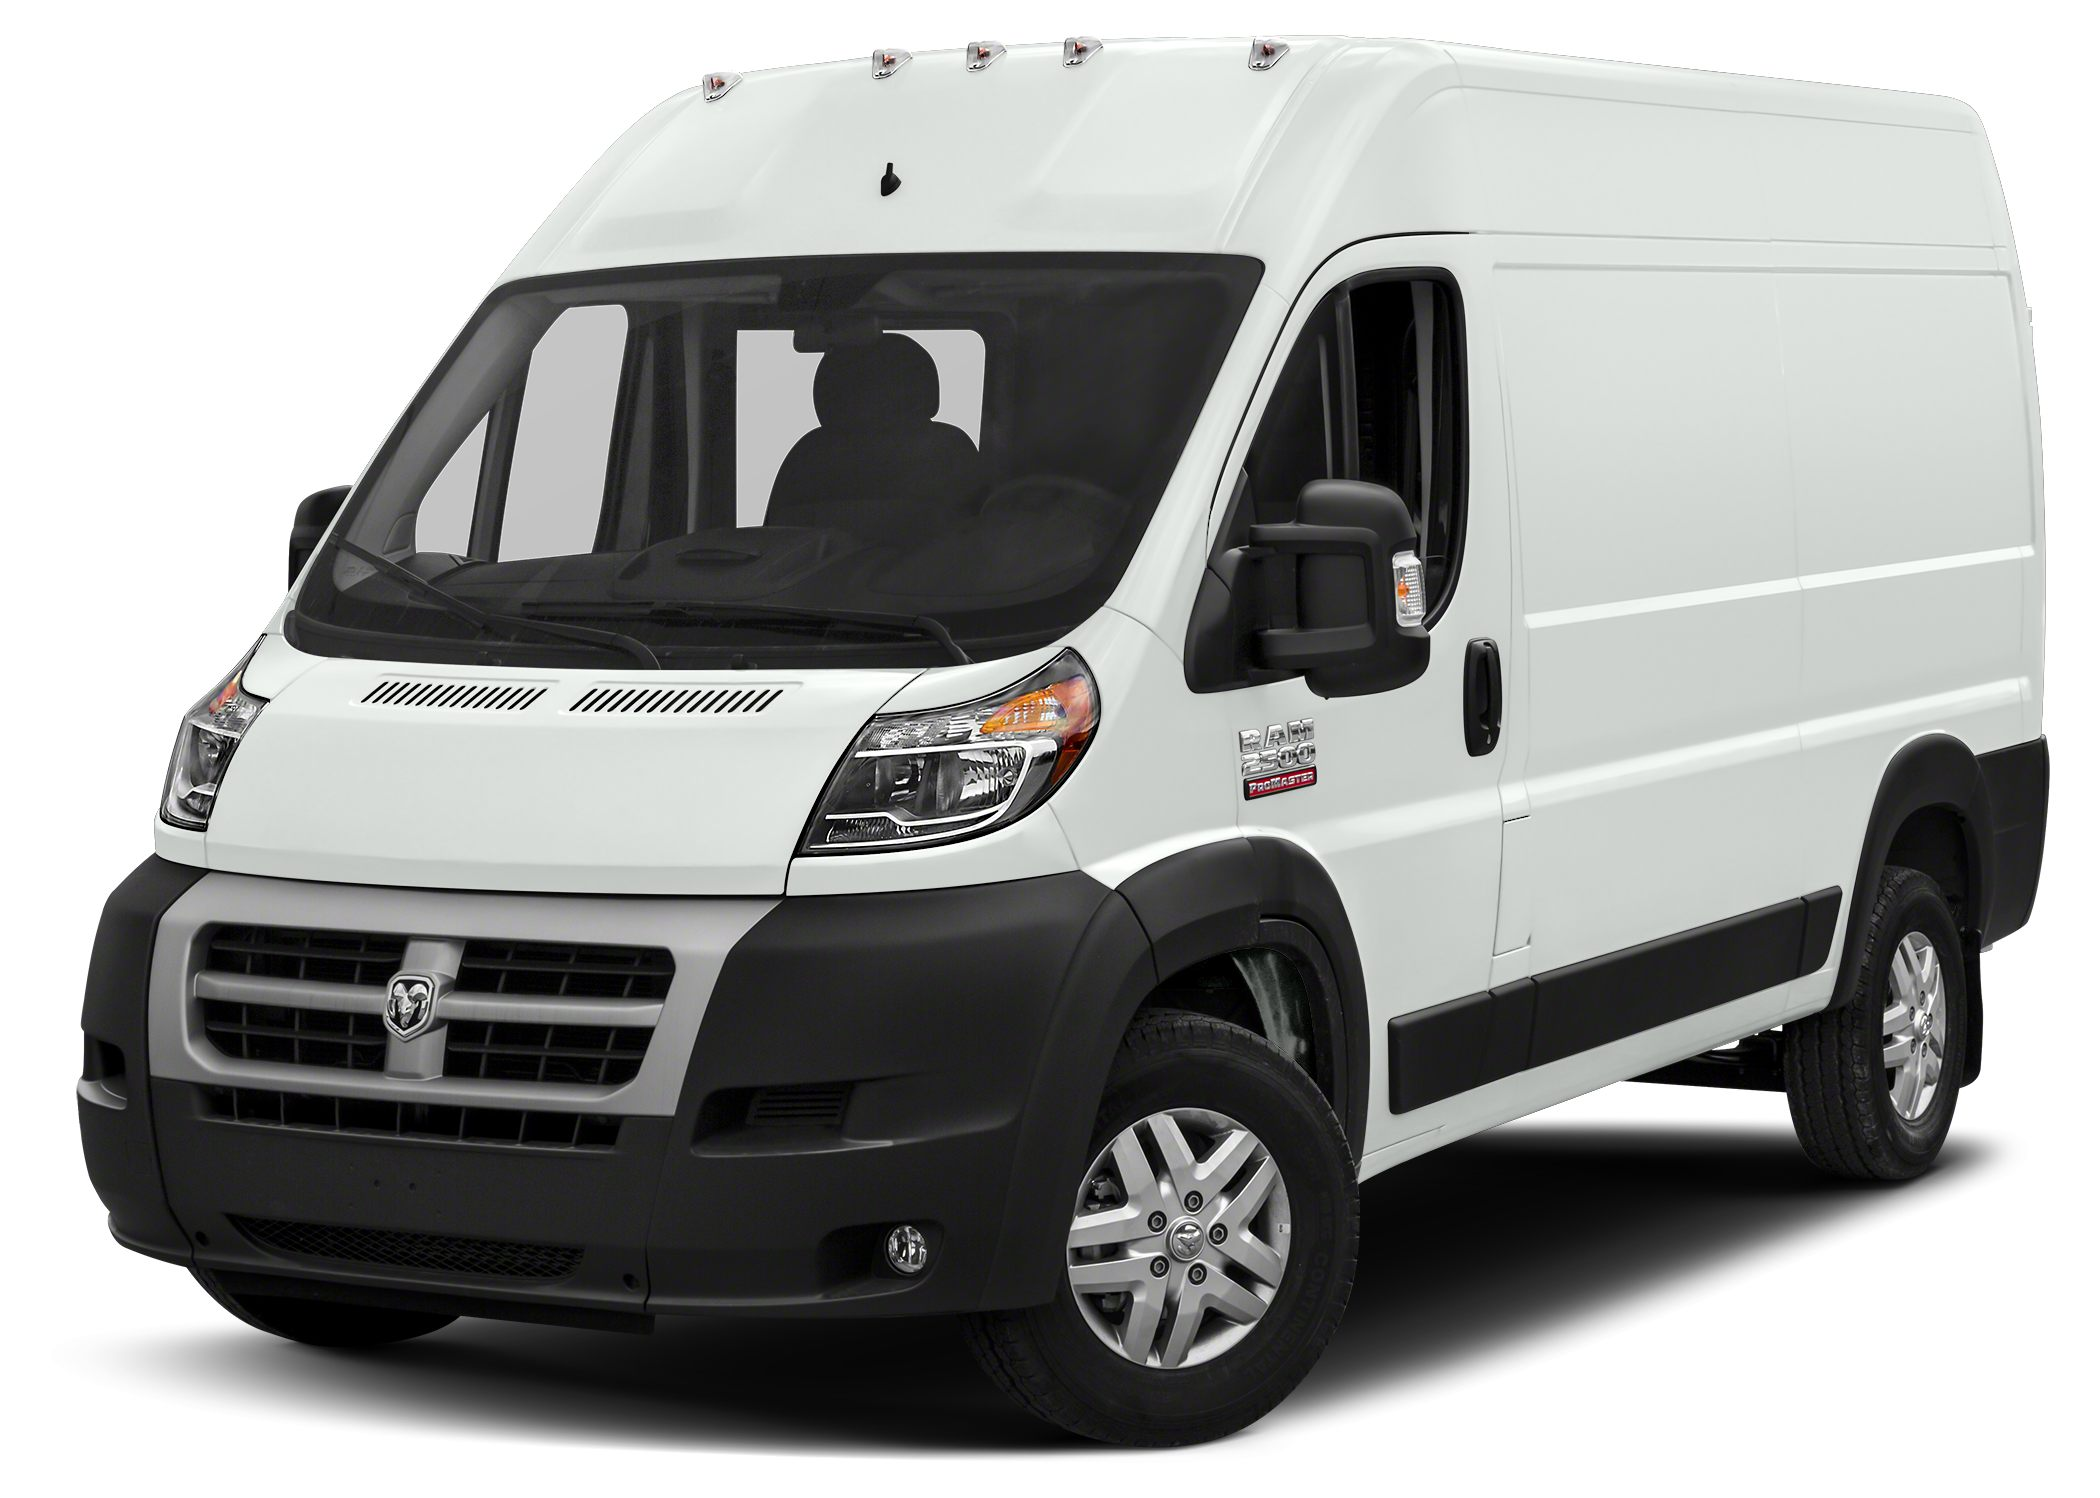 2015 RAM ProMaster 1500 136 WB High Roof Cargo Steer your way toward stress-free driving with anti